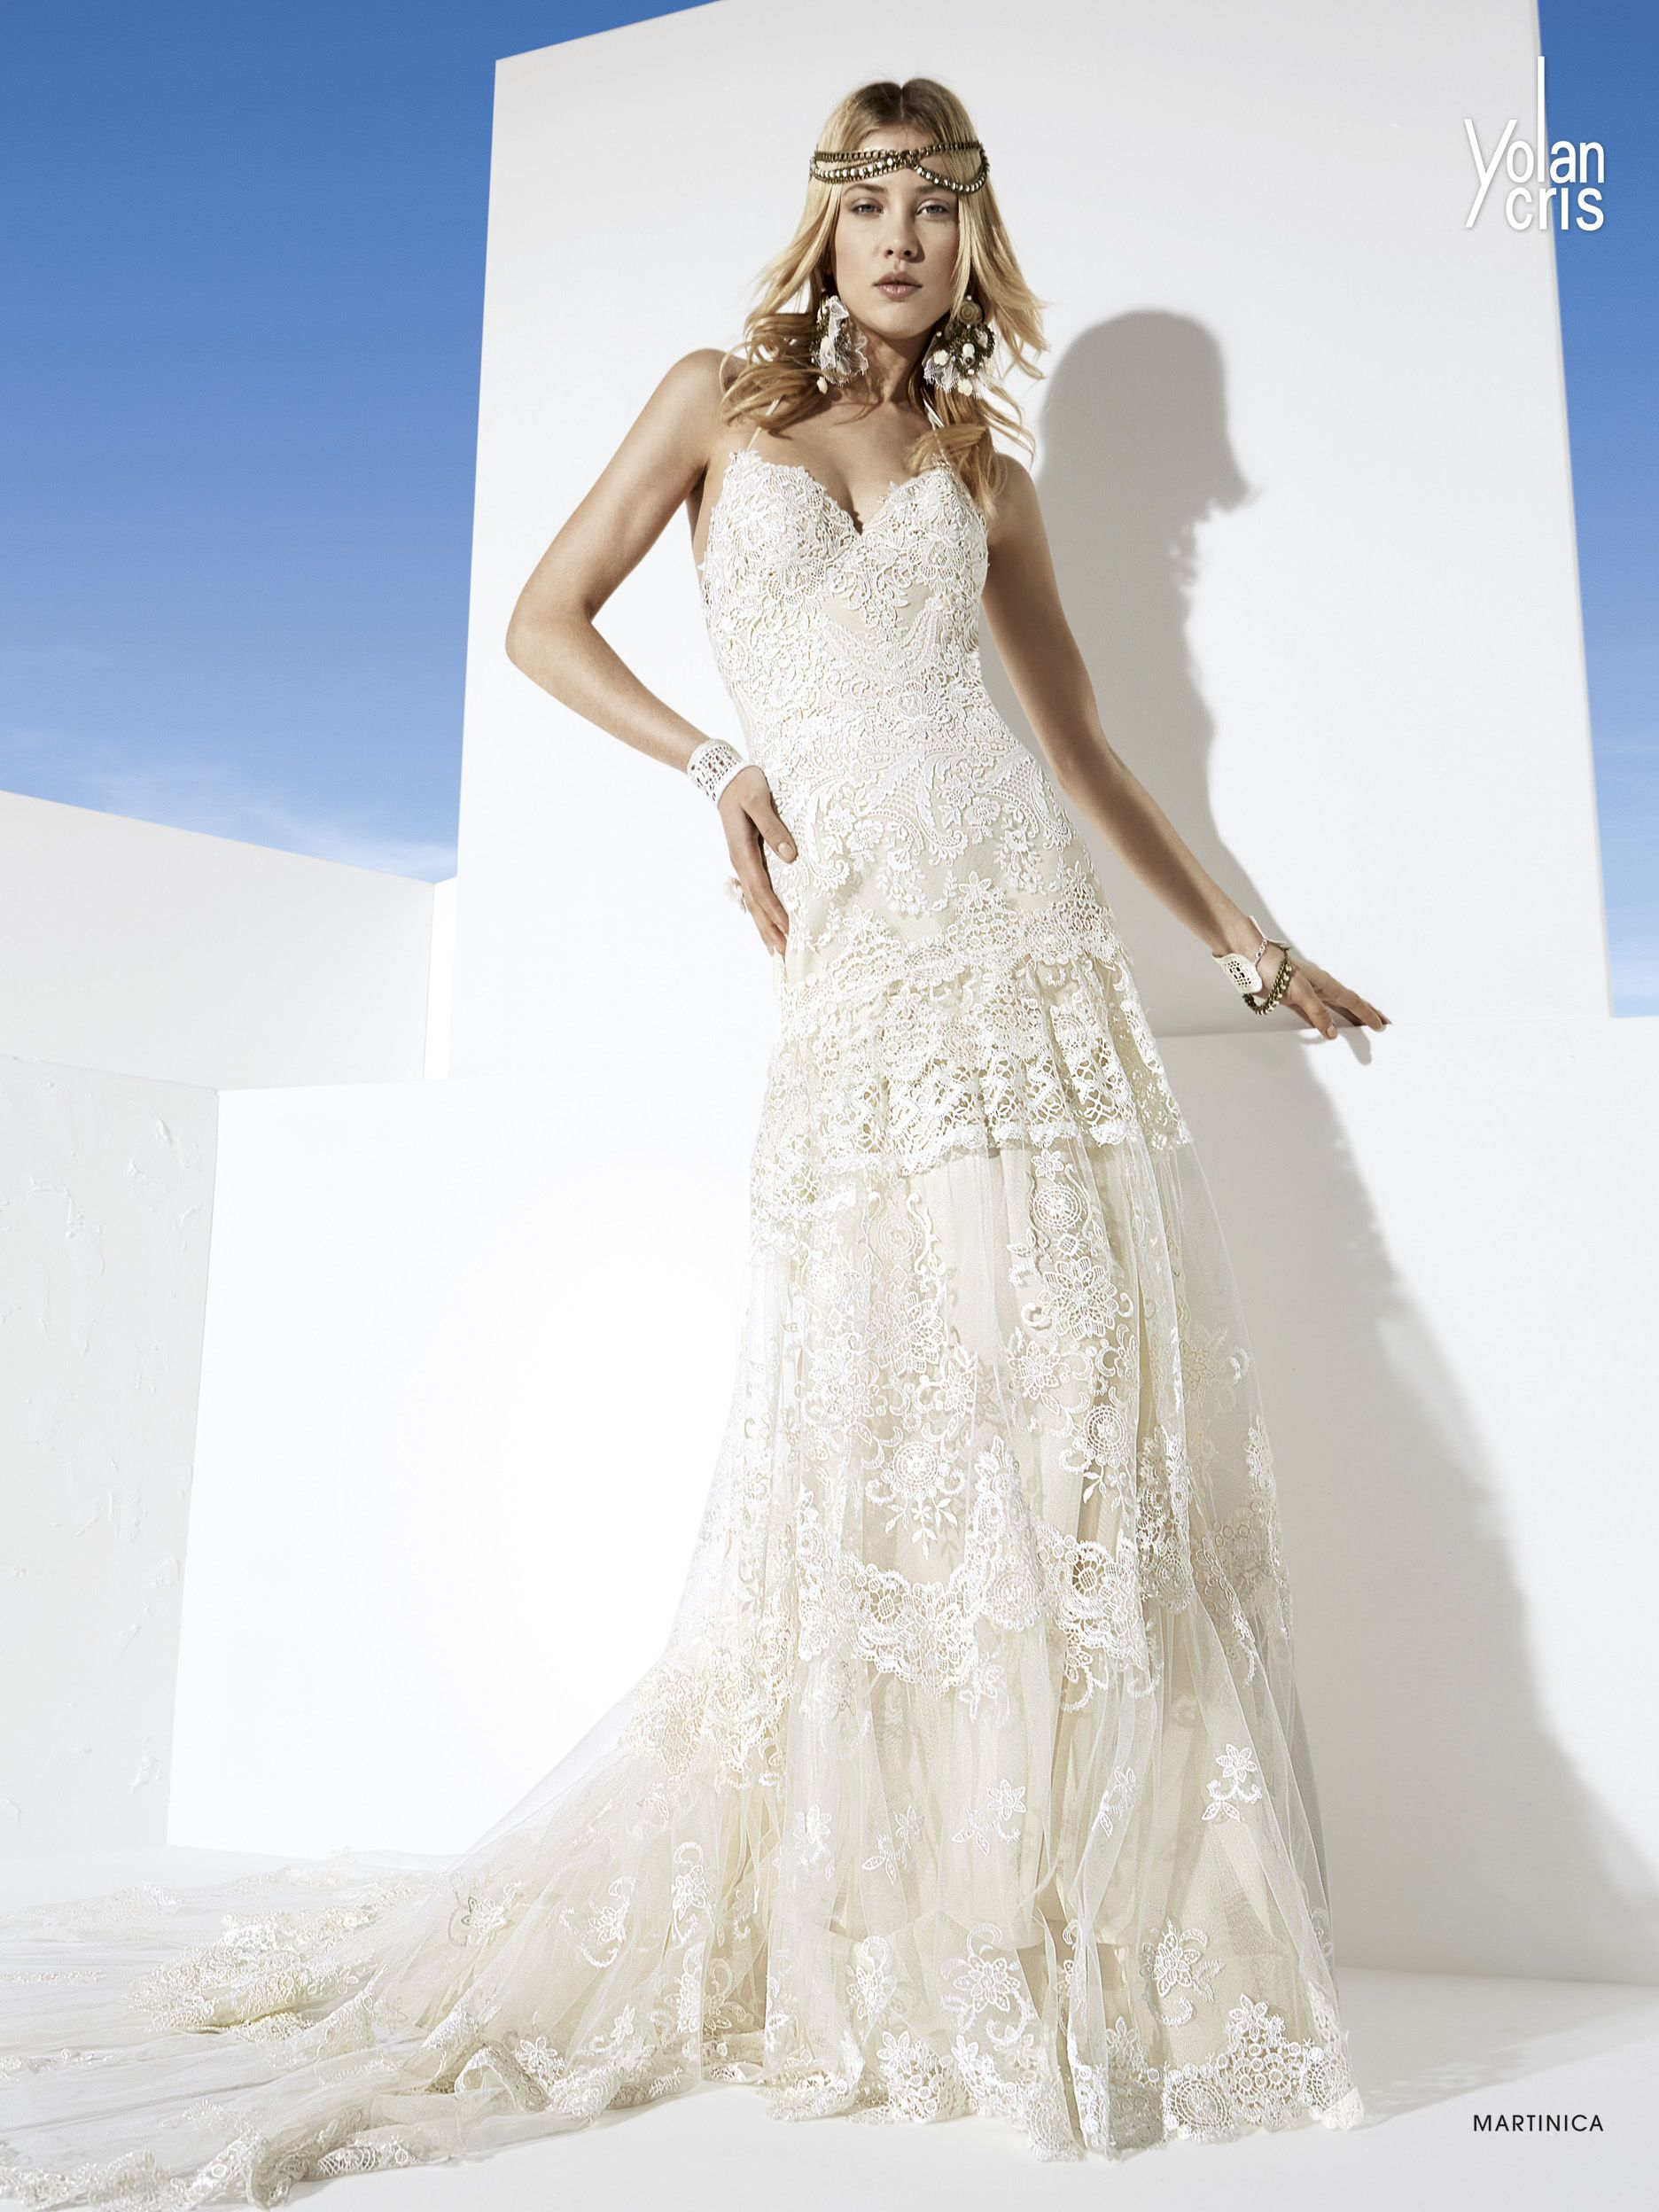 Yolan Cris collection great Boho chic look at Nouvelle vogue bridal ...